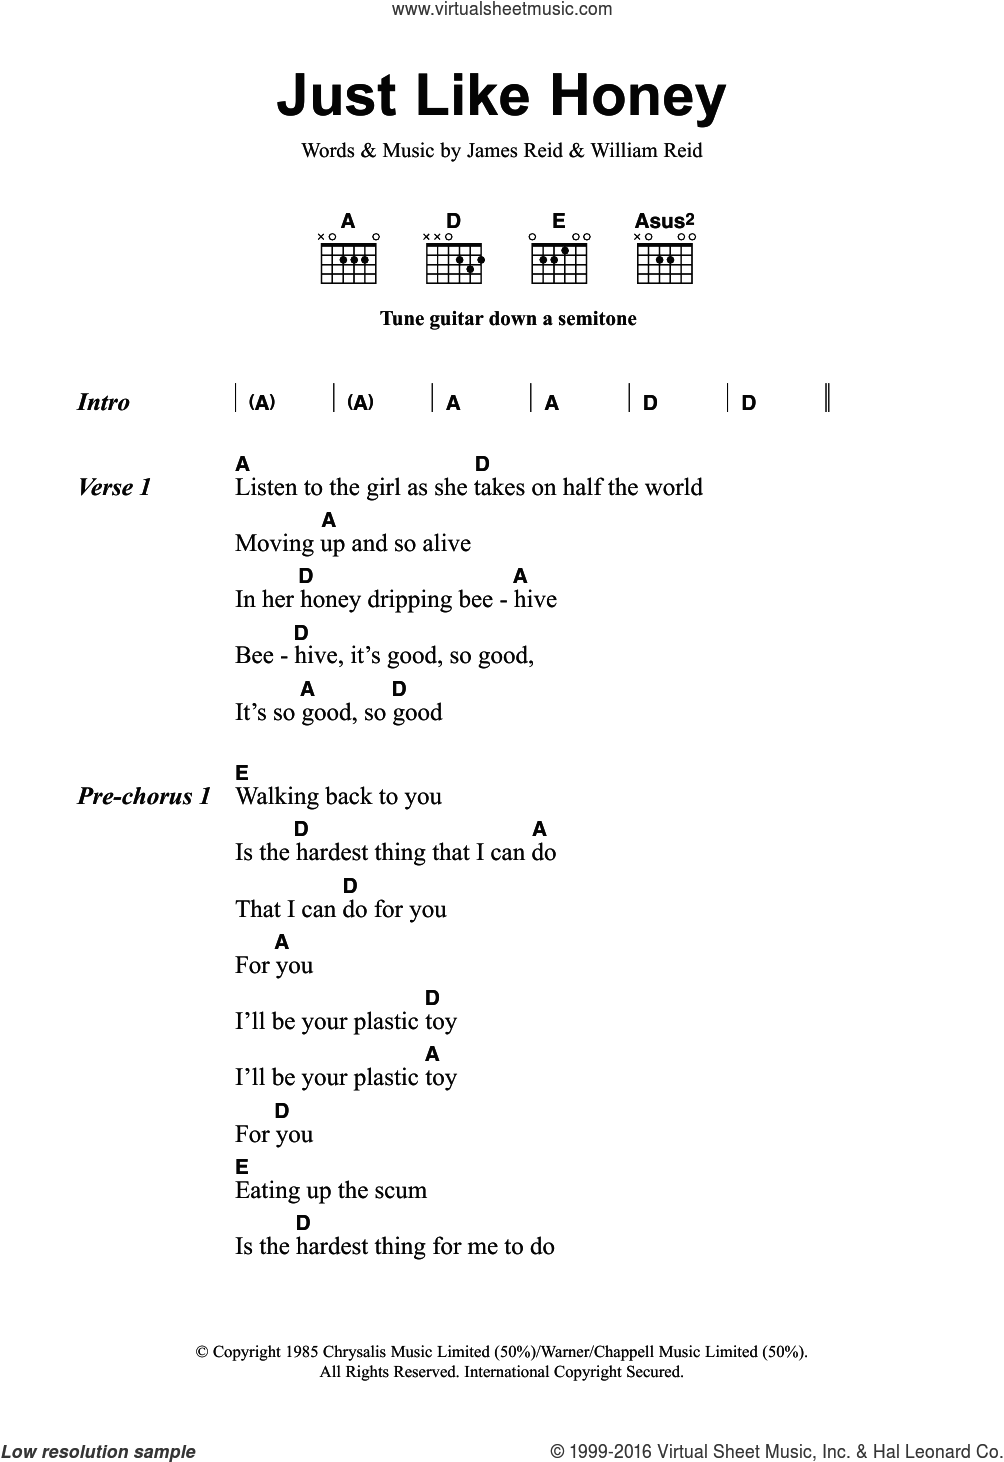 Just Like Honey sheet music for guitar (chords) by The Jesus And Mary Chain, James Reid and William Reid, intermediate